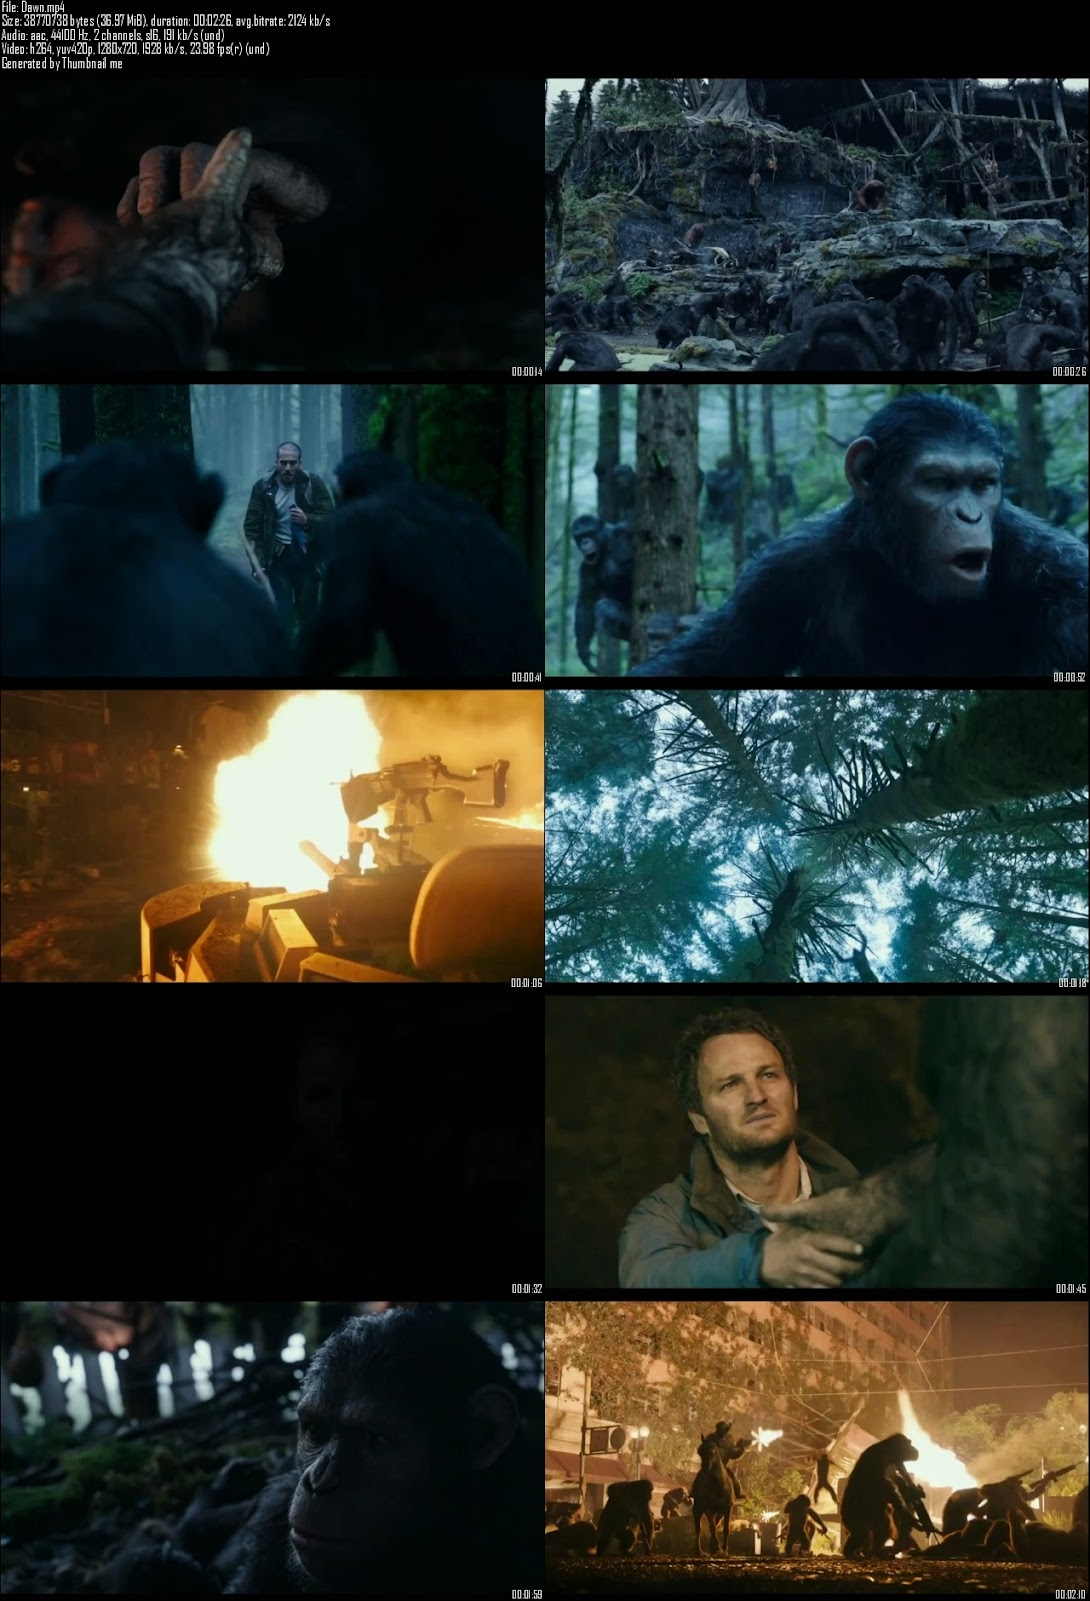 Single Resumable Download Link For Dawn Of The Planet Of The Apes (2014) First Look Promo HD